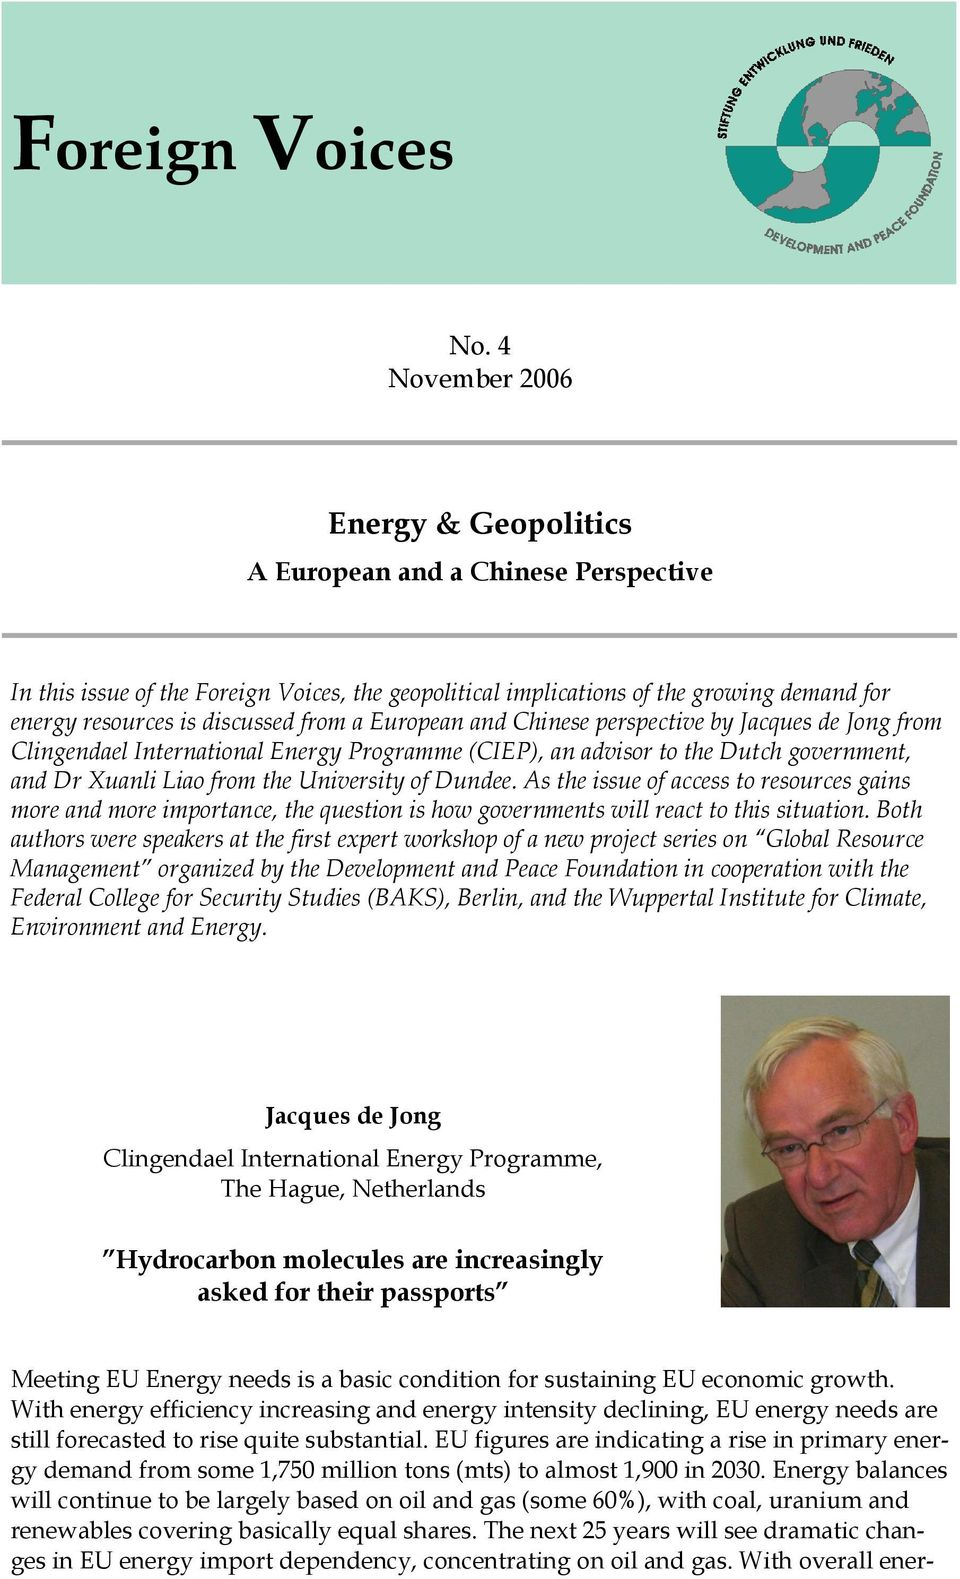 from a European and Chinese perspective by Jacques de Jong from Clingendael International Energy Programme (CIEP), an advisor to the Dutch government, and Dr Xuanli Liao from the University of Dundee.